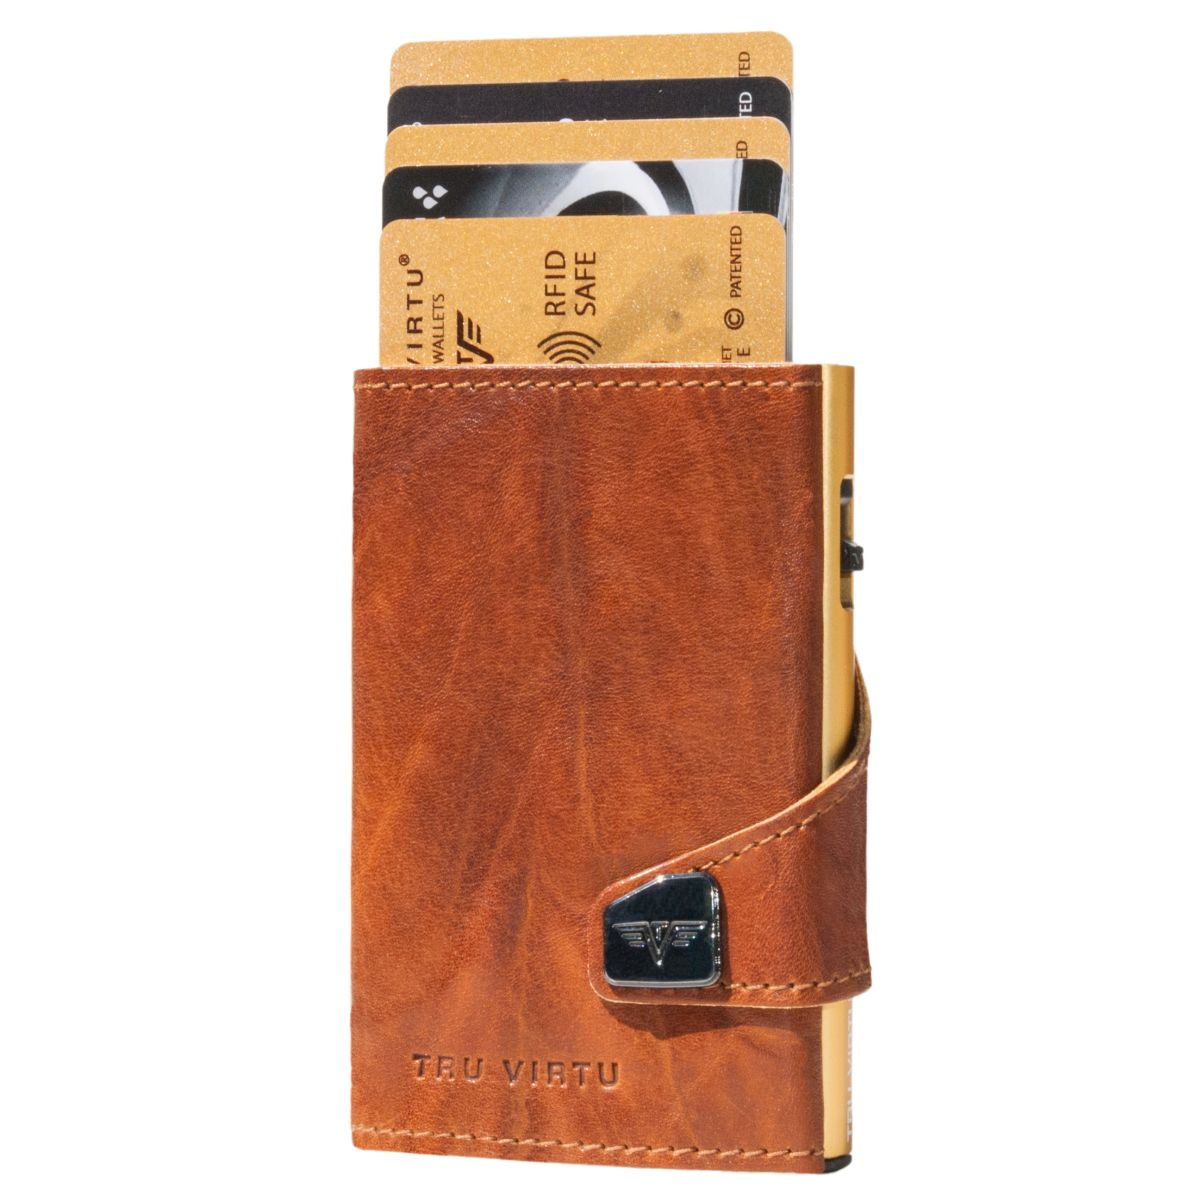 TRU VIRTU Click n Slide Wallet - Caramba Brown / Gold